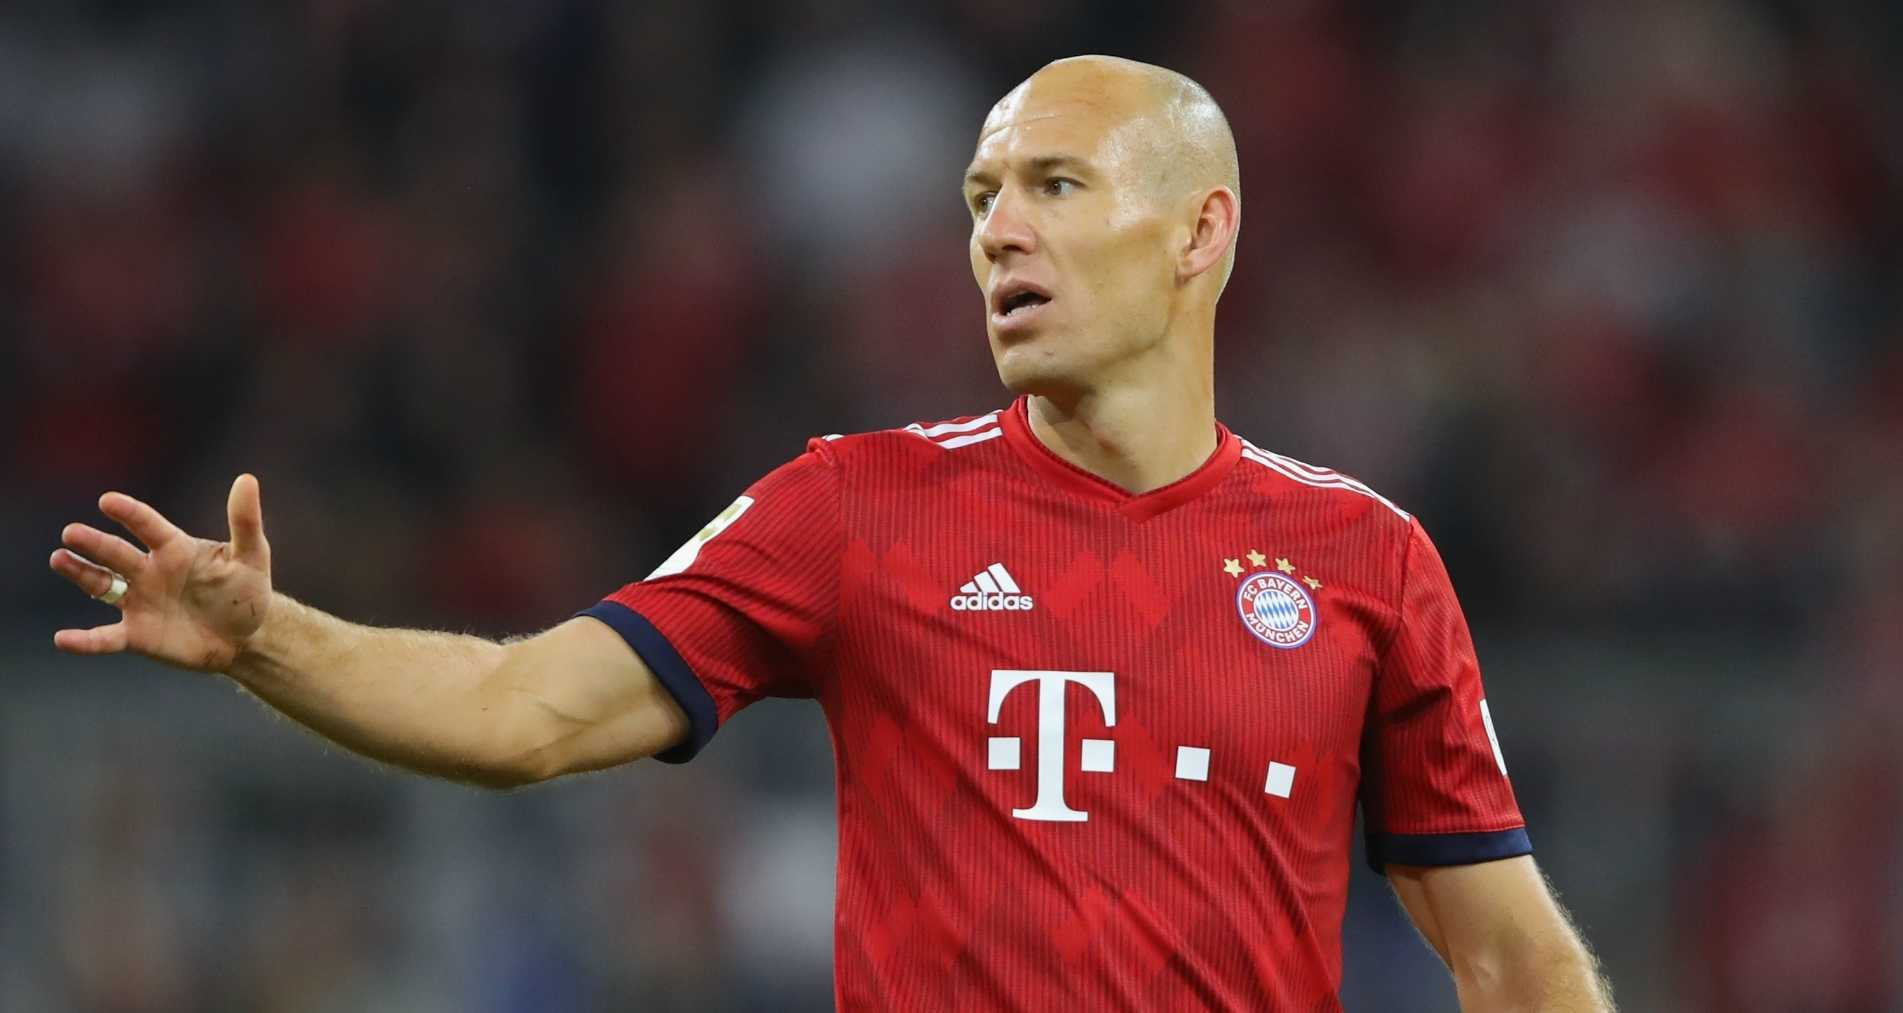 Real Madrid And Bayern Munich Star Arjen Robben Announces